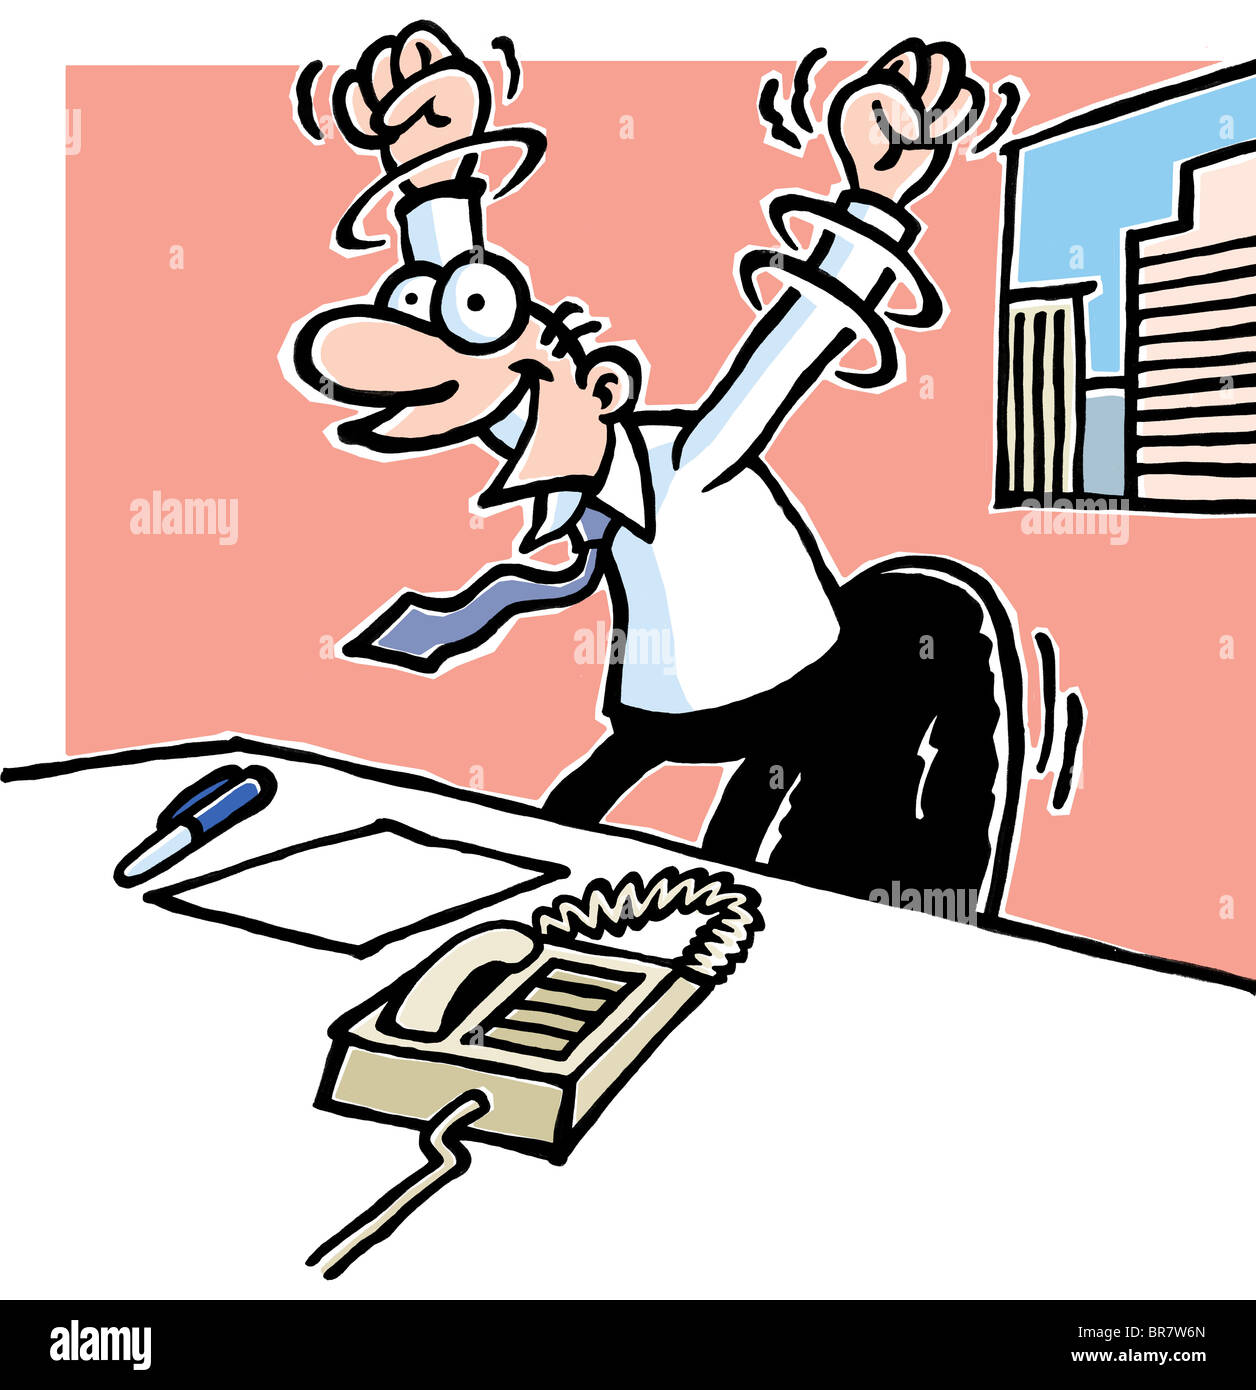 A cartoon drawing of a man at work desk with his arms held